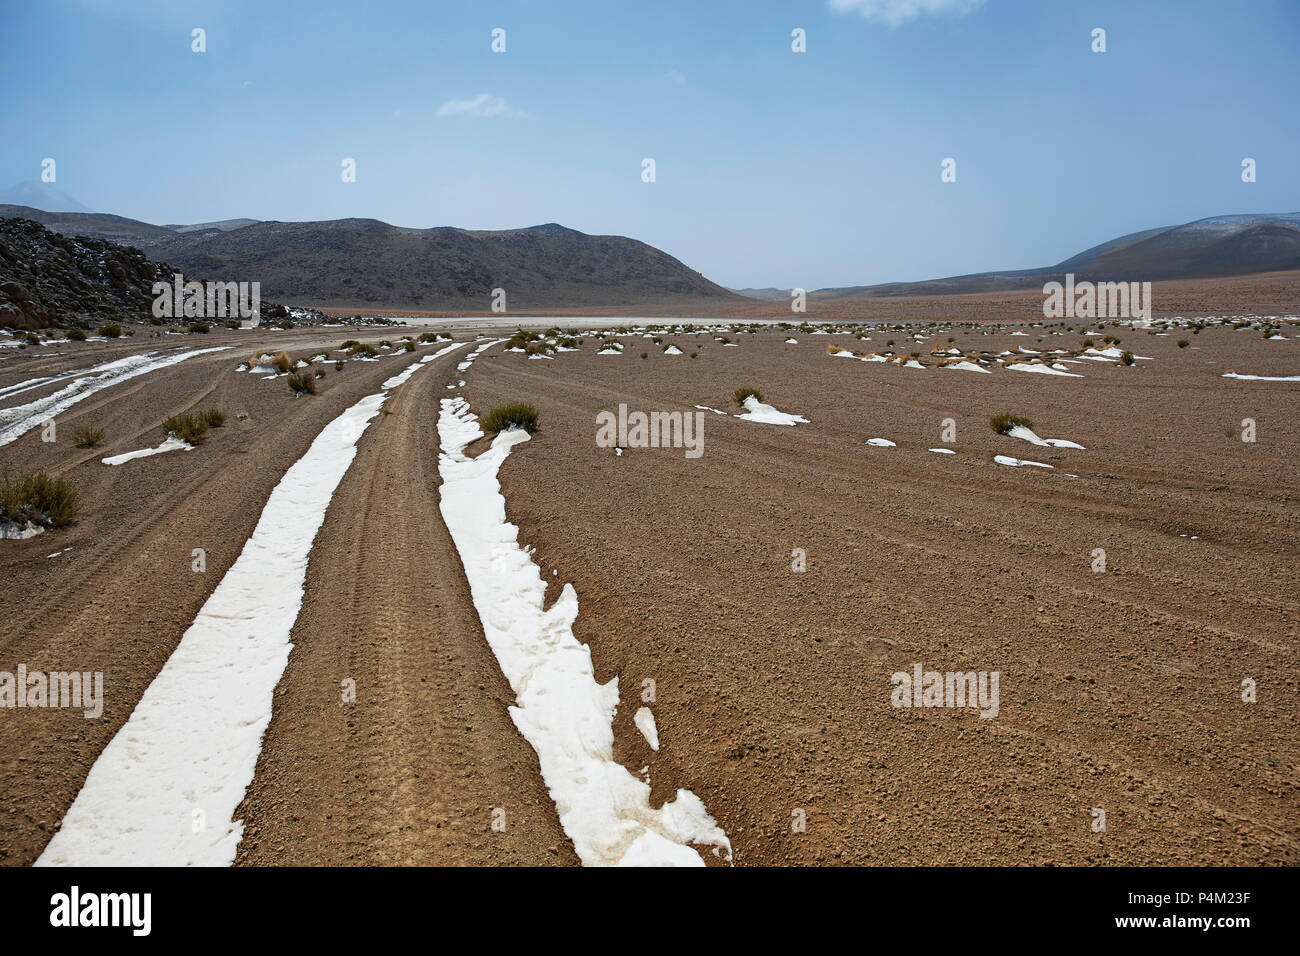 Snow covered track in Farallon de Tara, Atacama Desert, Bolivia - Stock Image